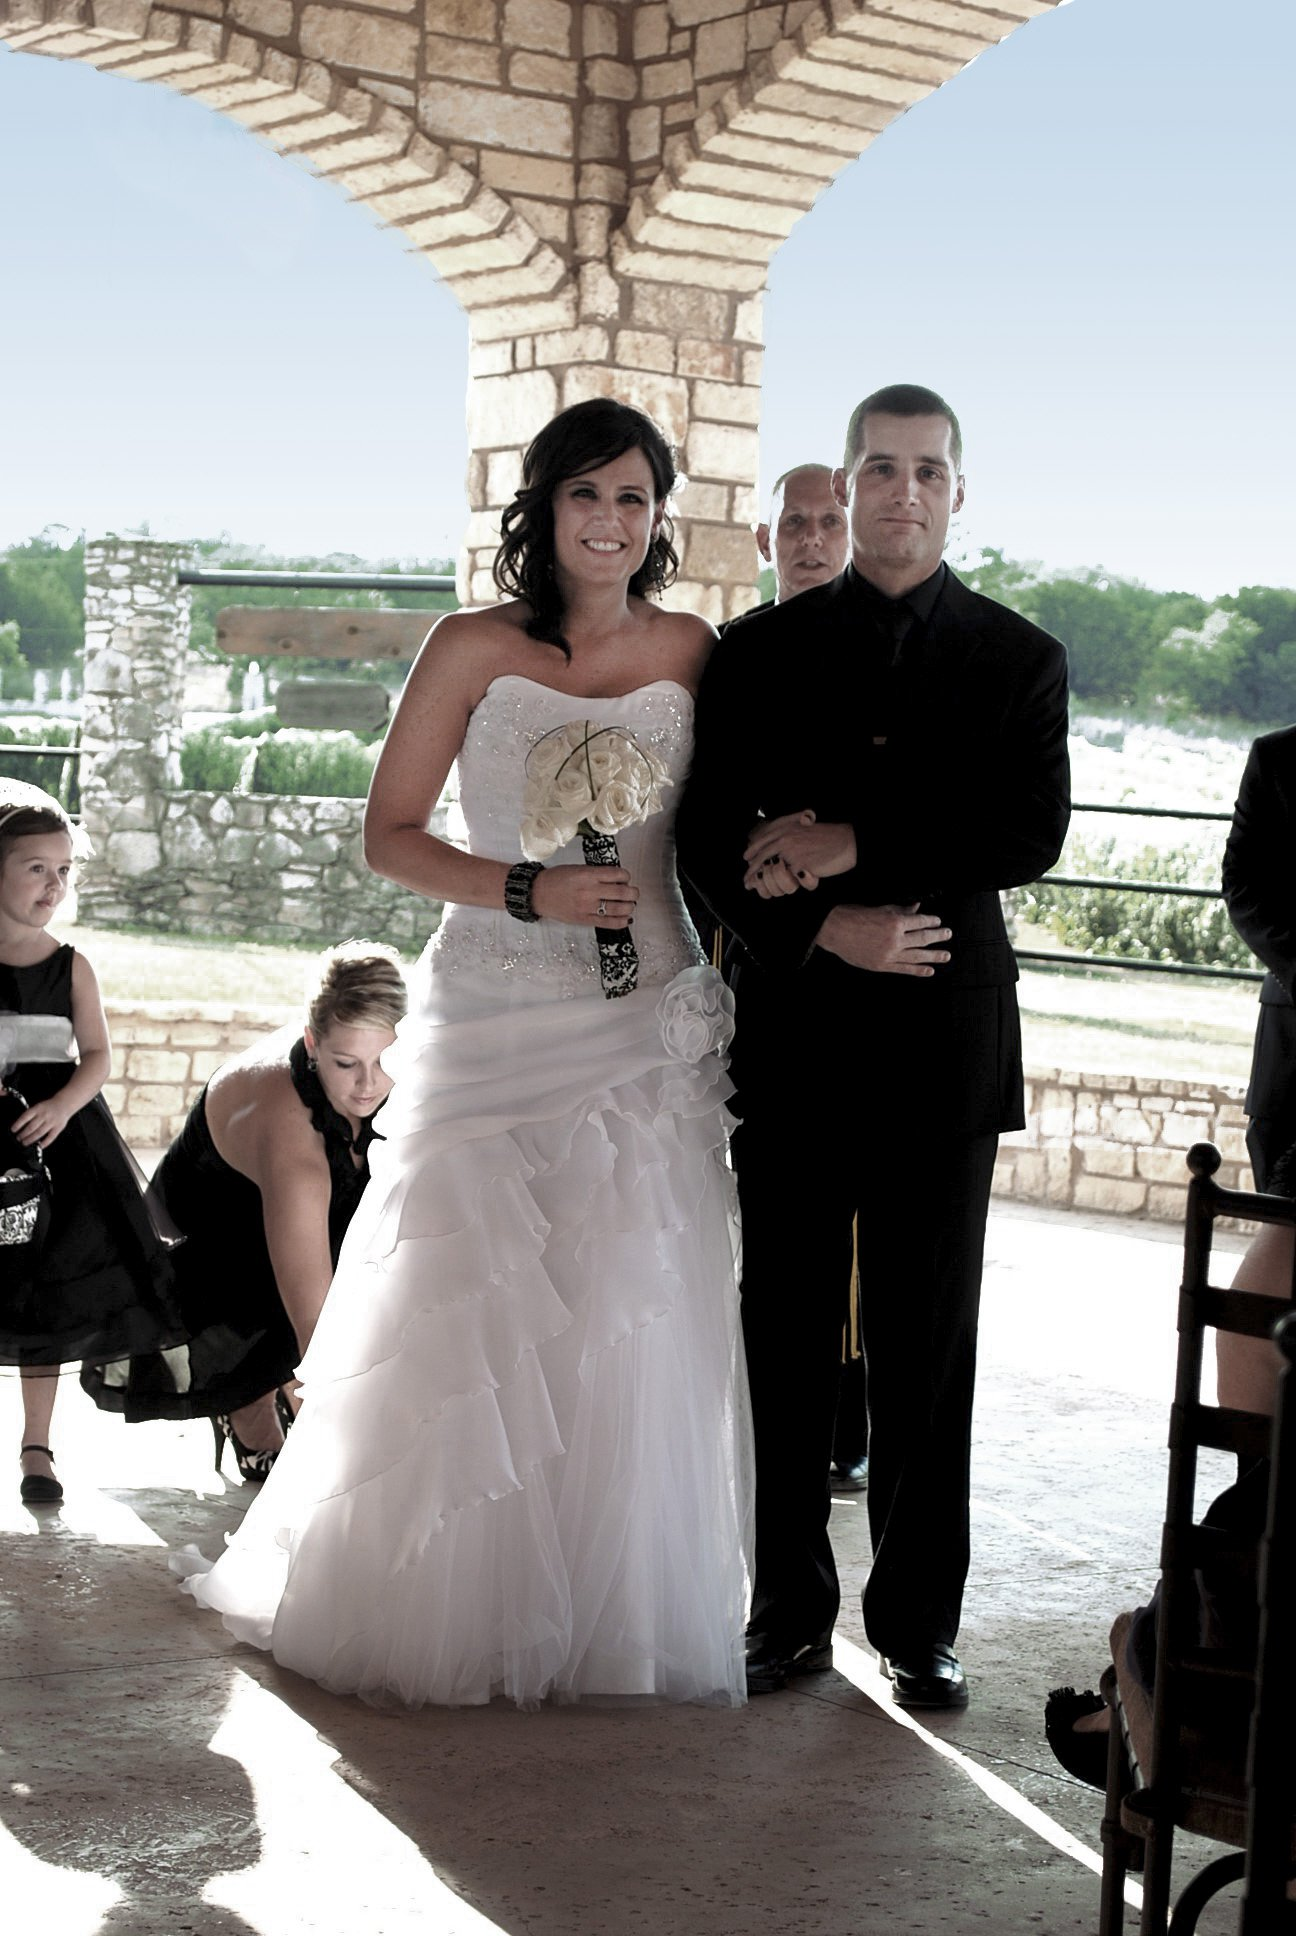 My black and white wedding. My hubs wore all black and so did my girls.